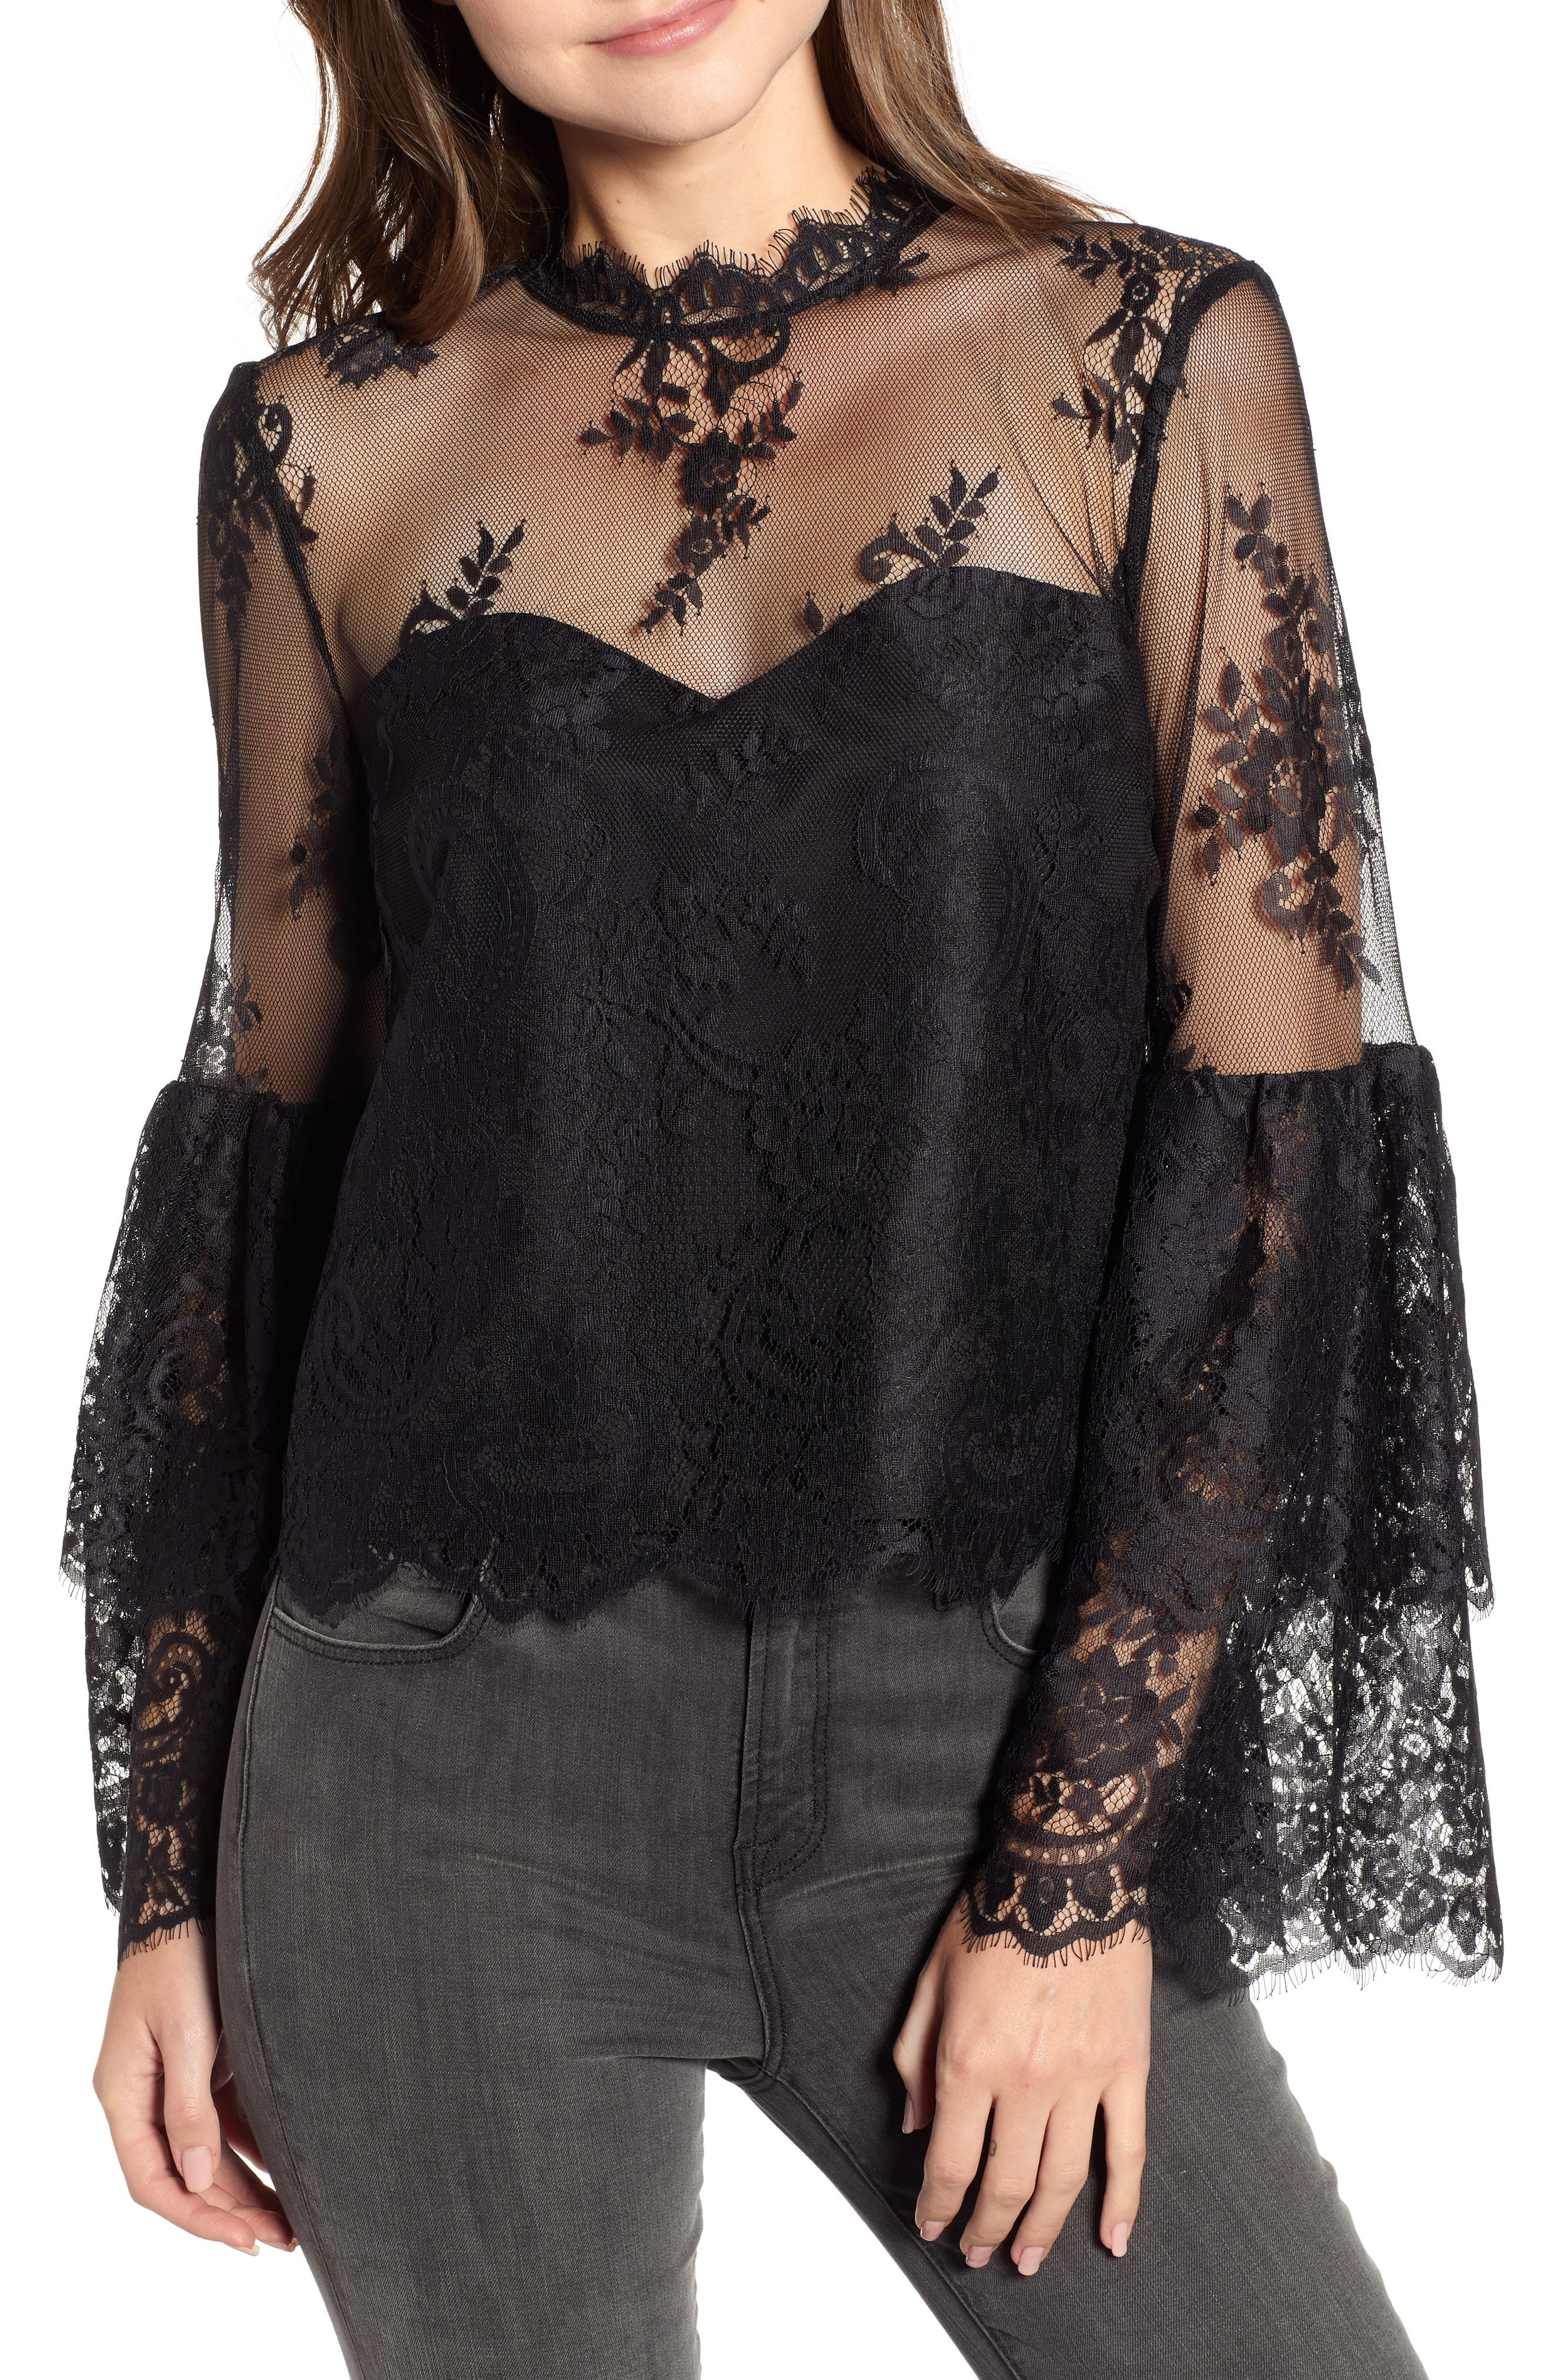 CUPCAKES AND CASHMERE Davey Lace Bell-Sleeve Illusion Blouse in Black